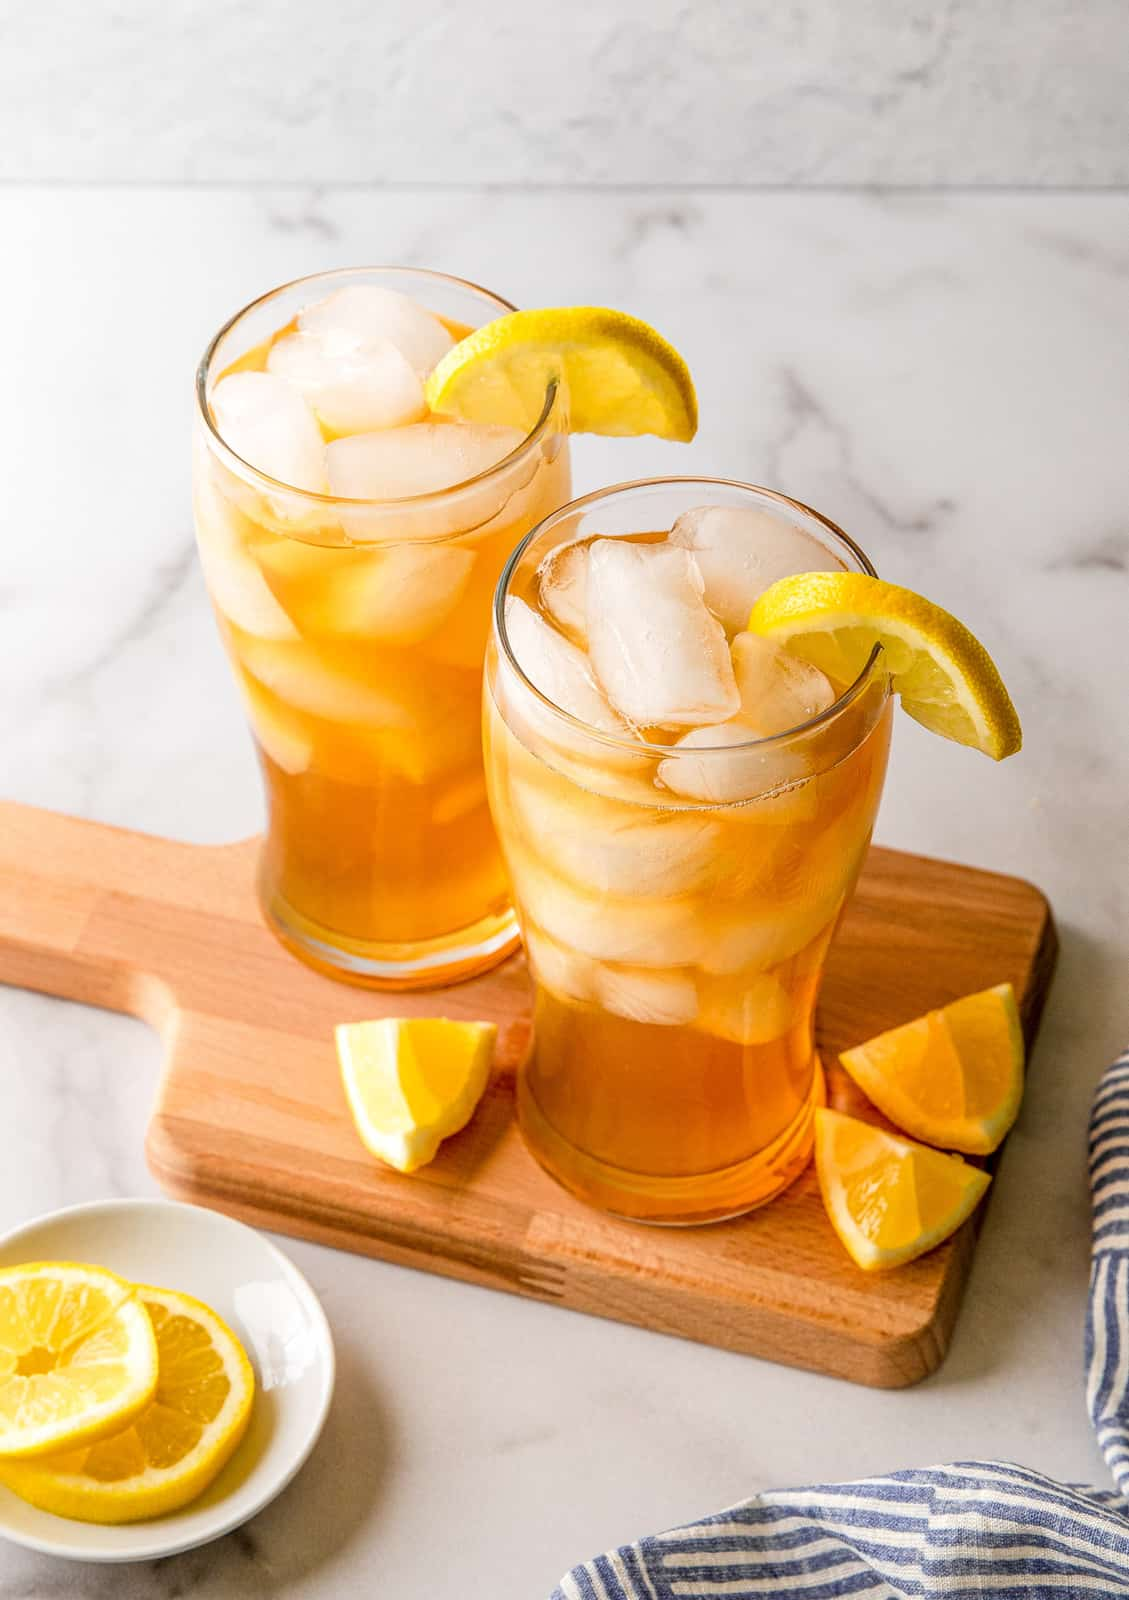 Two Arnold Palmers on wooden board surrounded by lemons